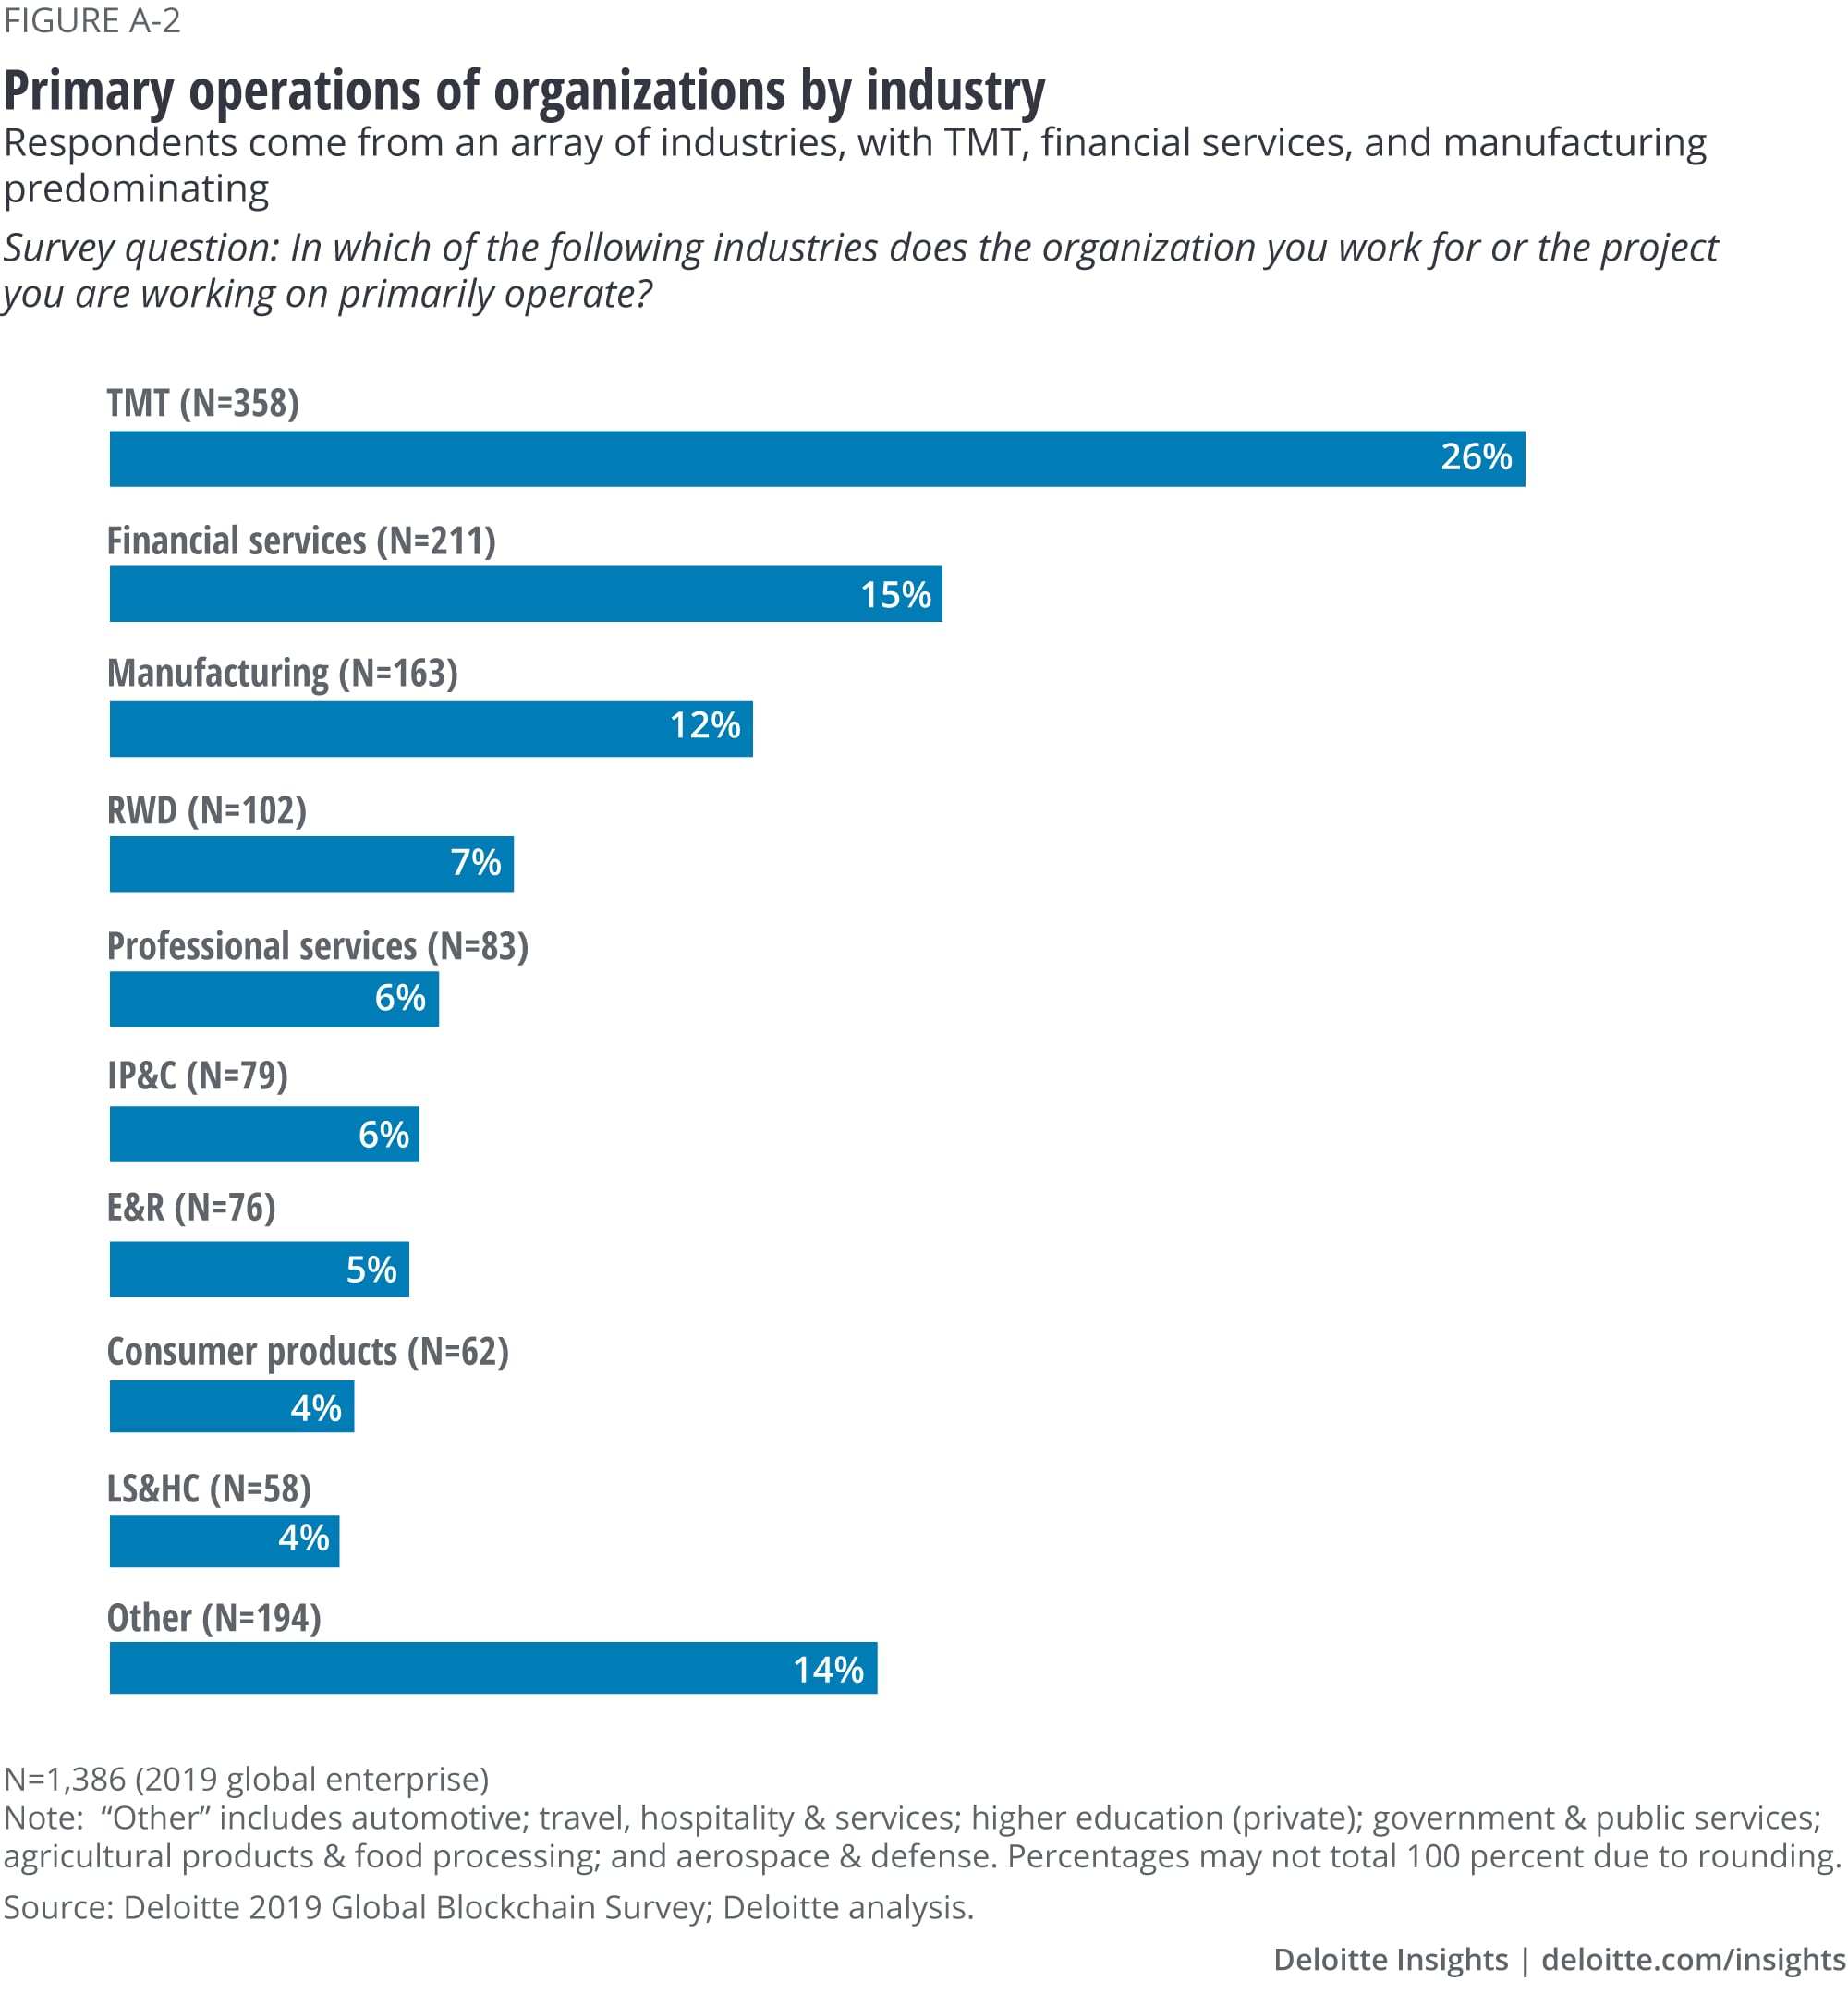 Primary operations of organizations by industry